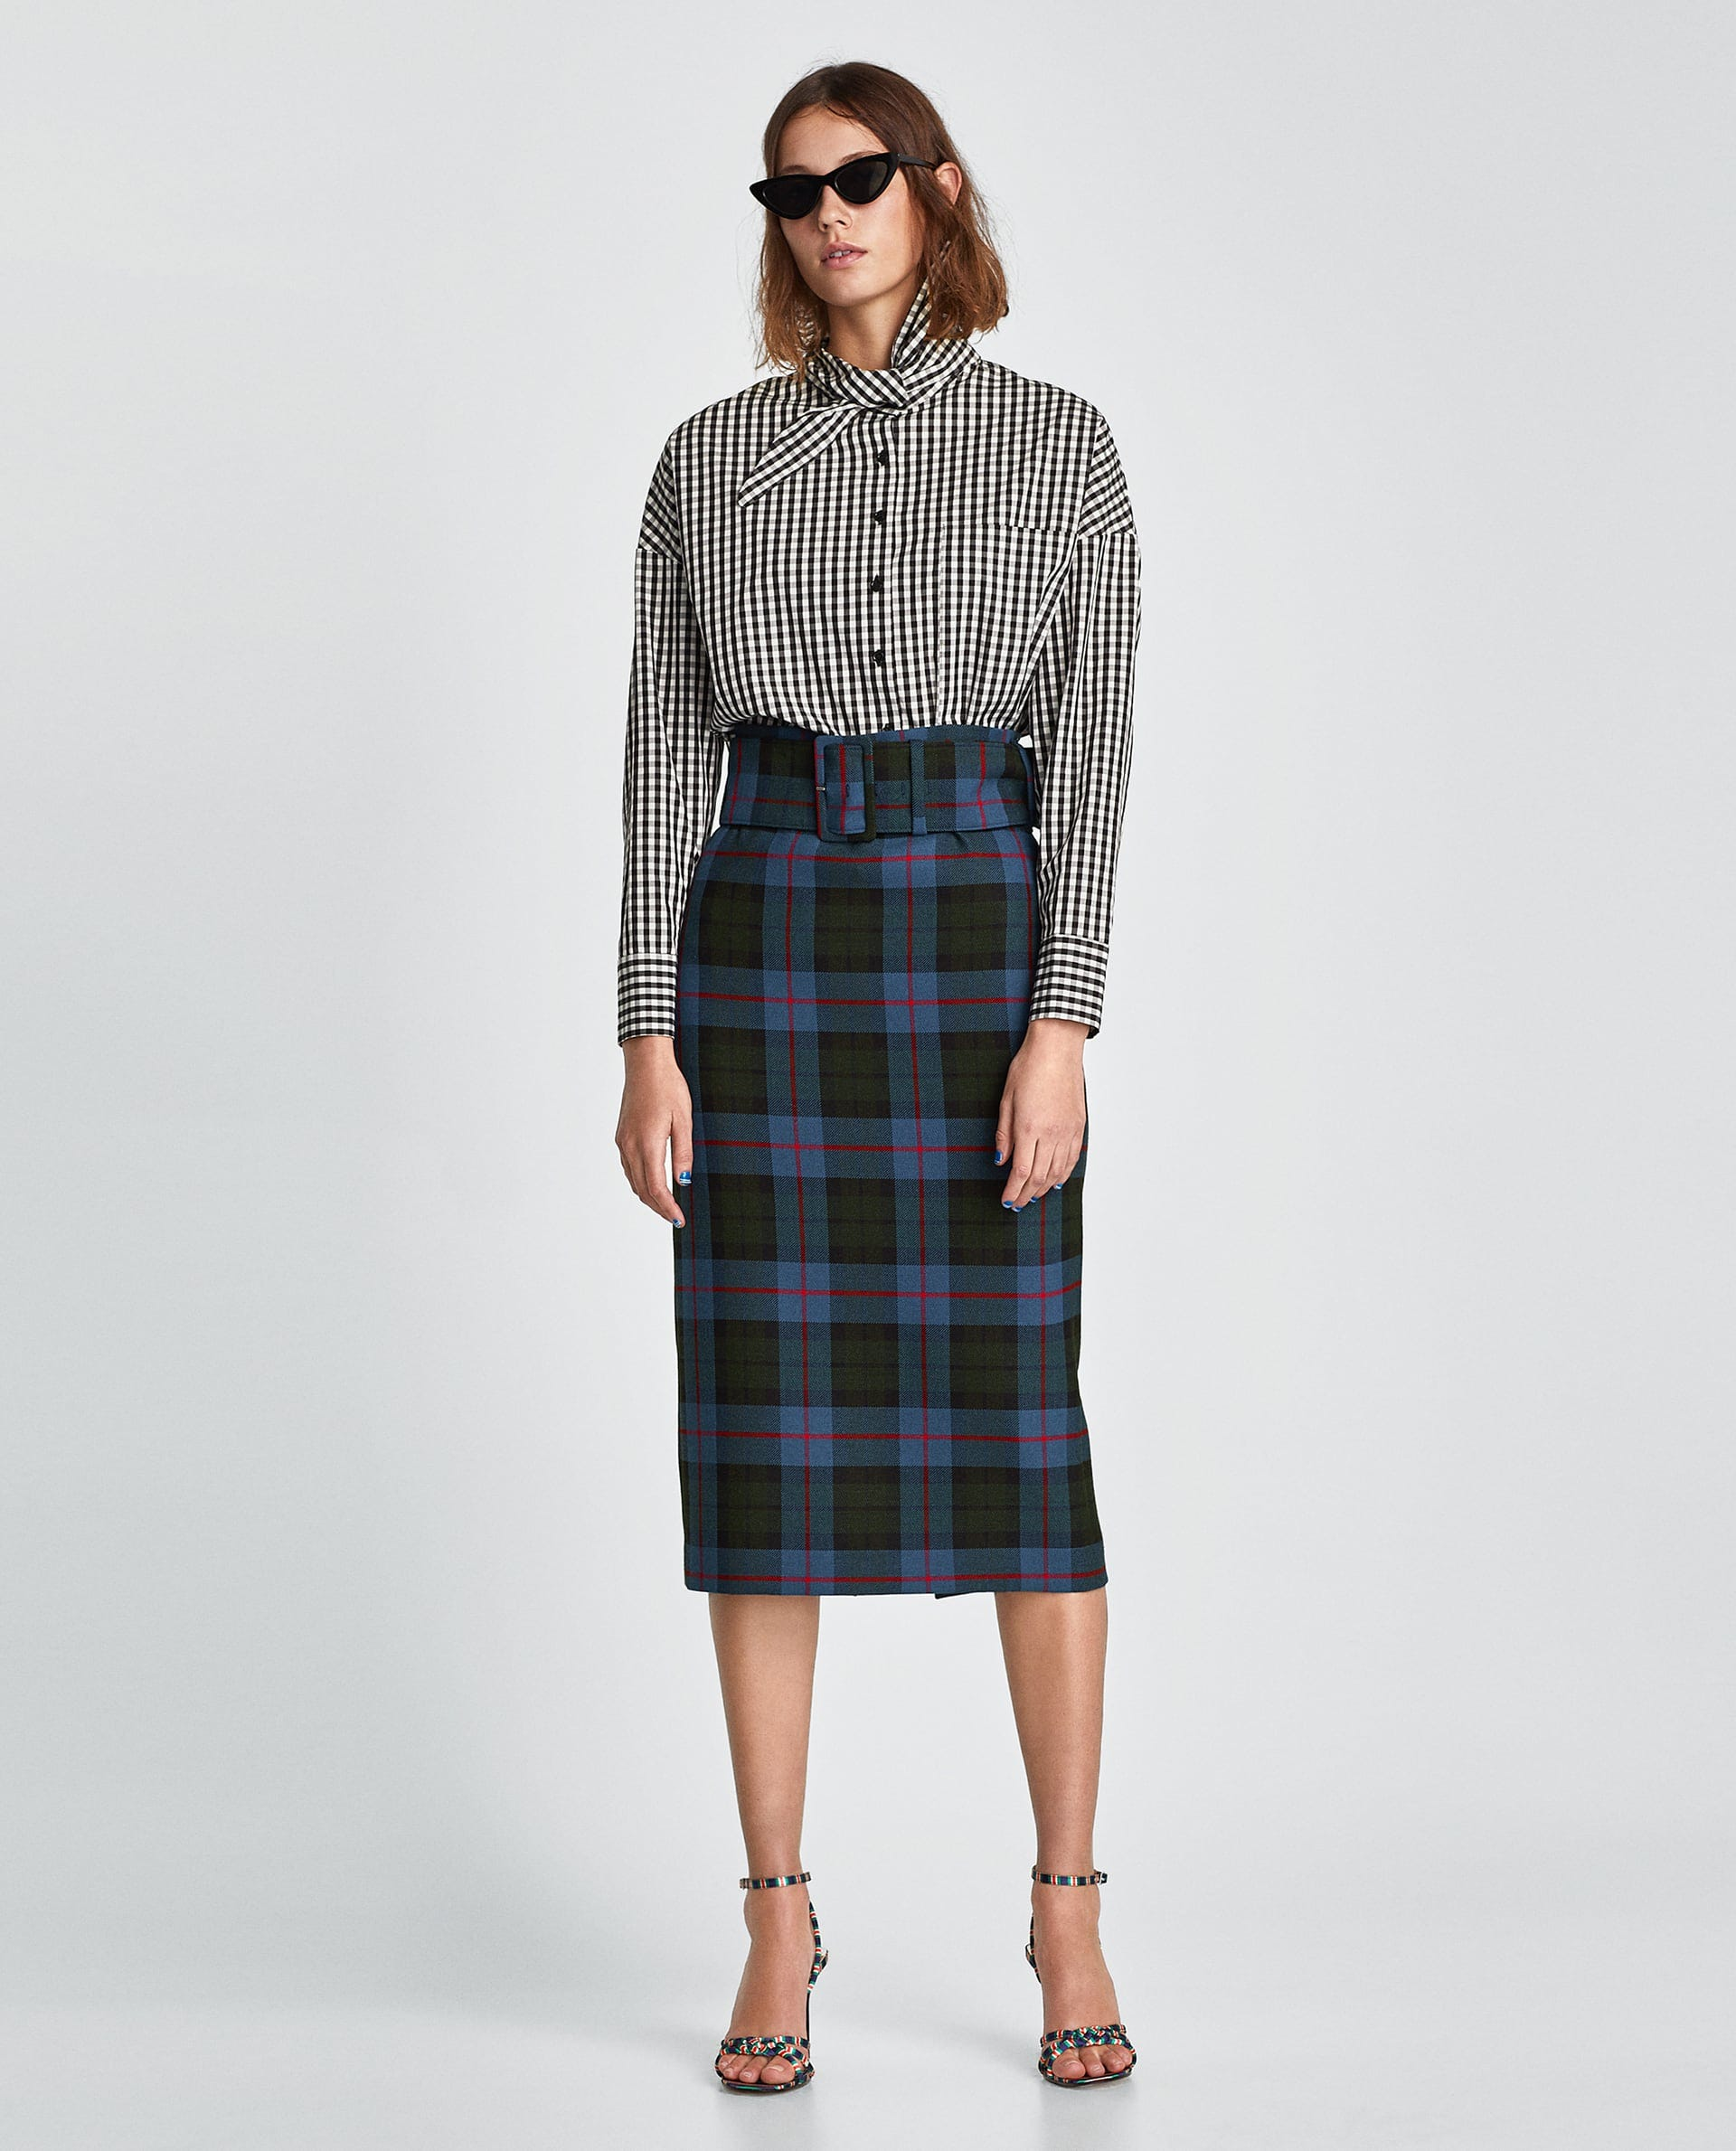 608331a1 Cute Trendy Pencil Skirts For Winter 2018, Zara Mango